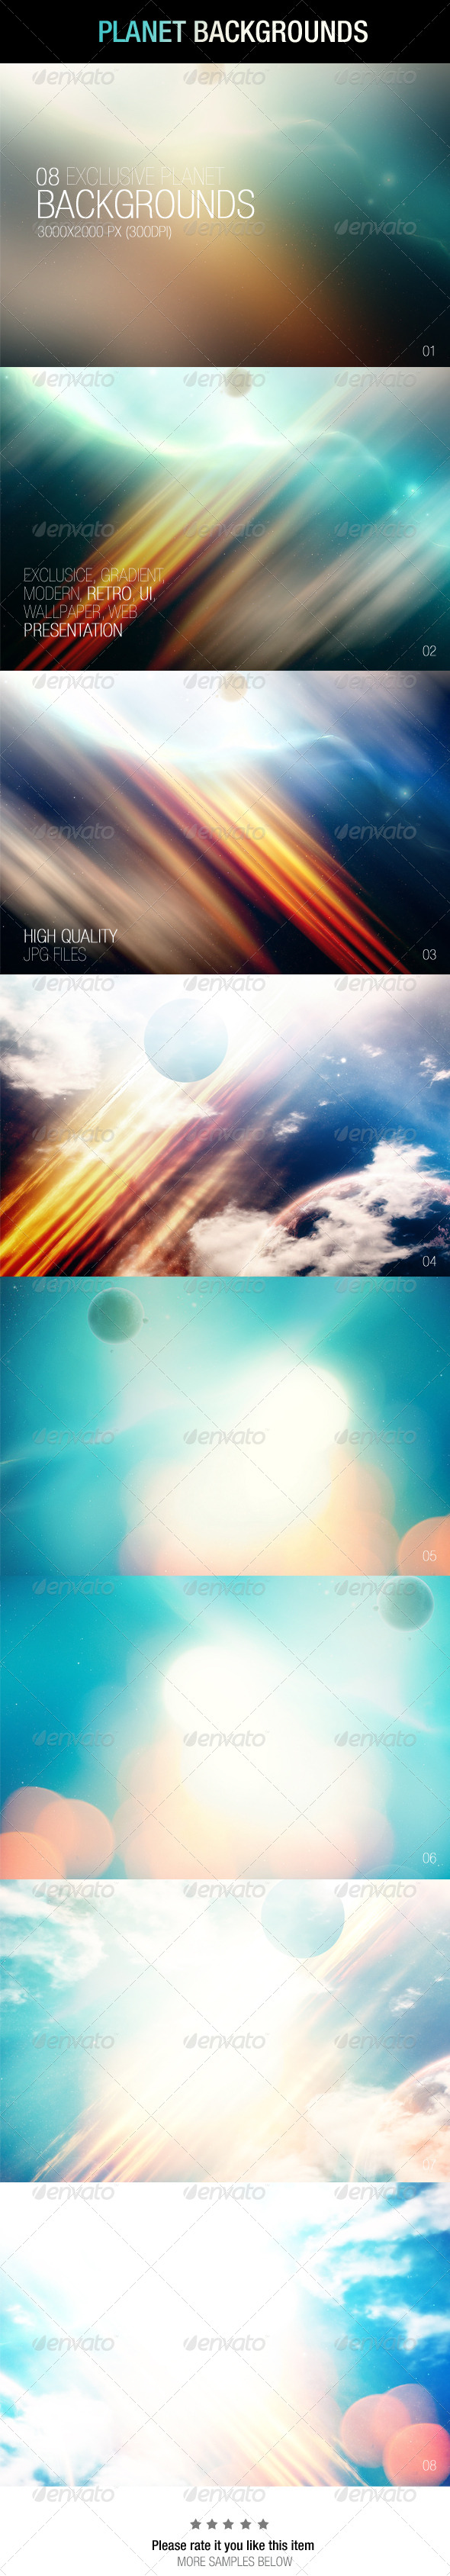 GraphicRiver Planet Backgrounds 6884936